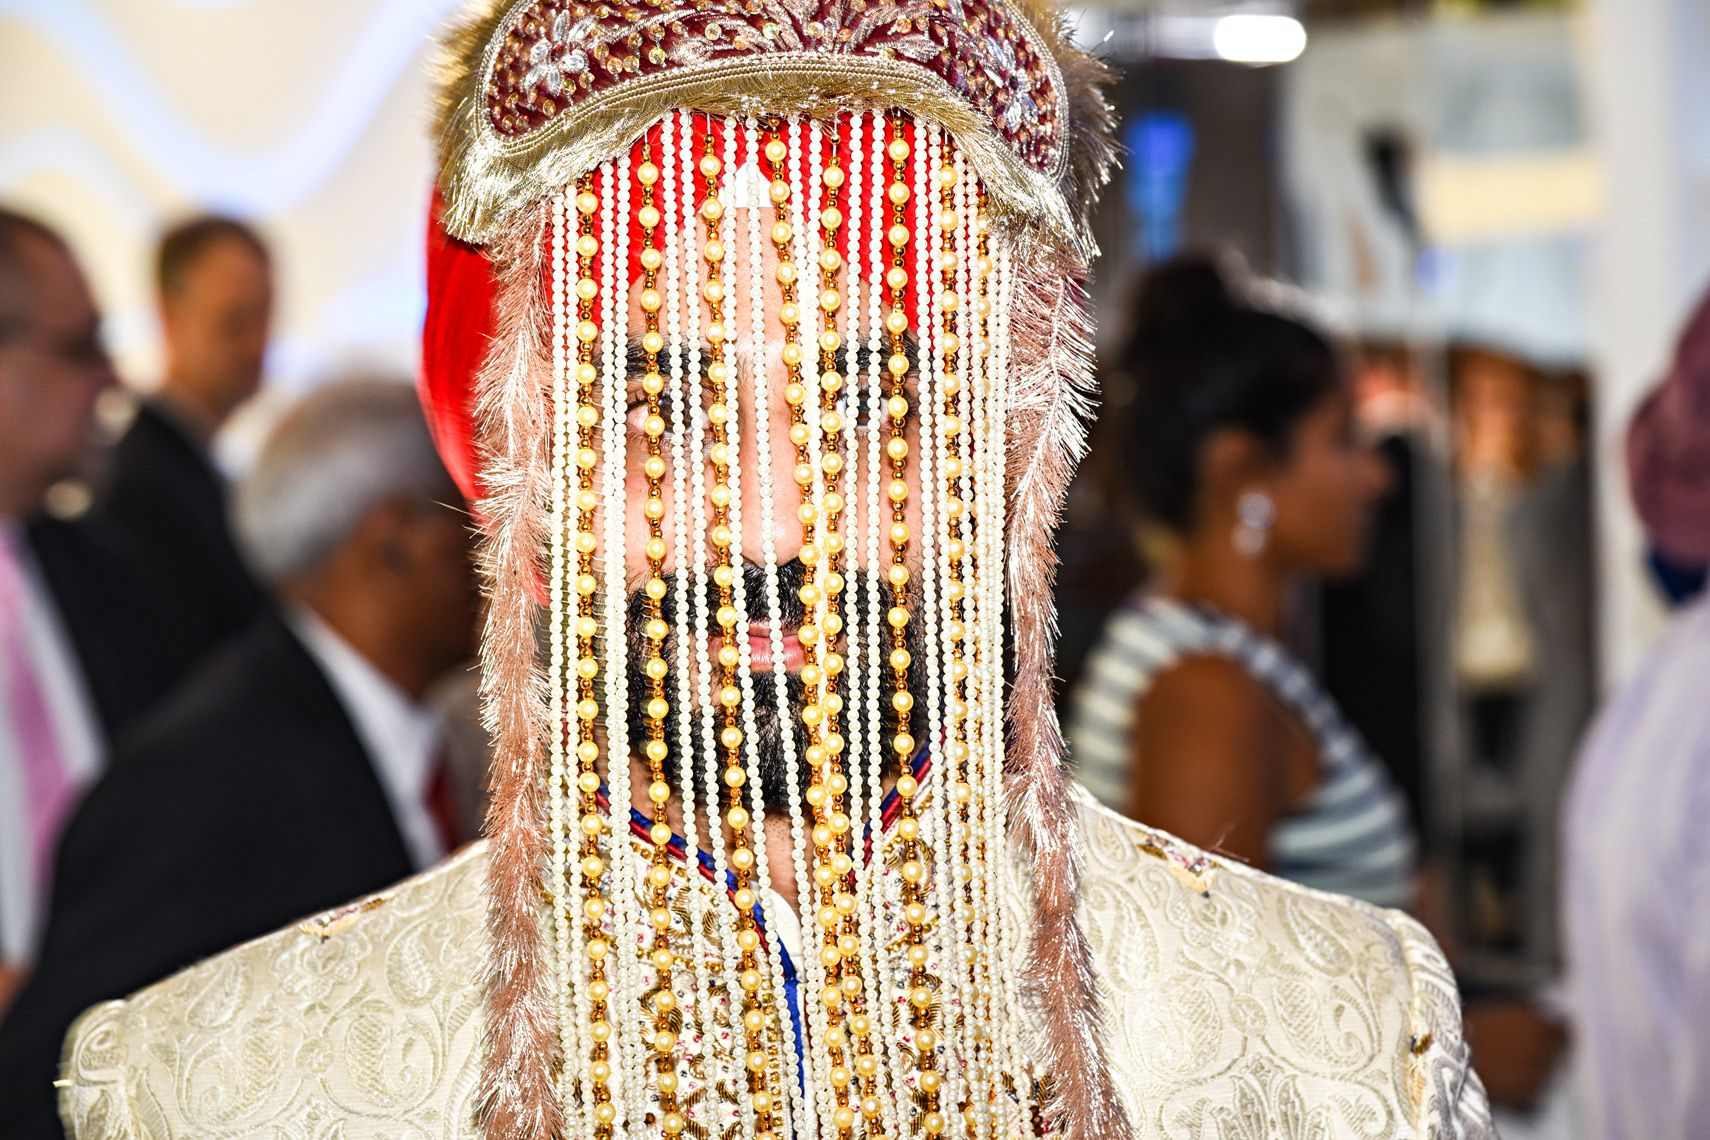 Indian Sehra Traditional Indian Wedding in South Florida Memories for You Weddings & Events  www.memoriesforyouevents.com Tony Gajate Photography  Sonesta Fort Lauderdale  #Memoriesforyou #sonestafortlauderdale #indianwedding #sikhweddingceremony #indiangroom #weddingtraditions #sikh #sikhgroom #sehra